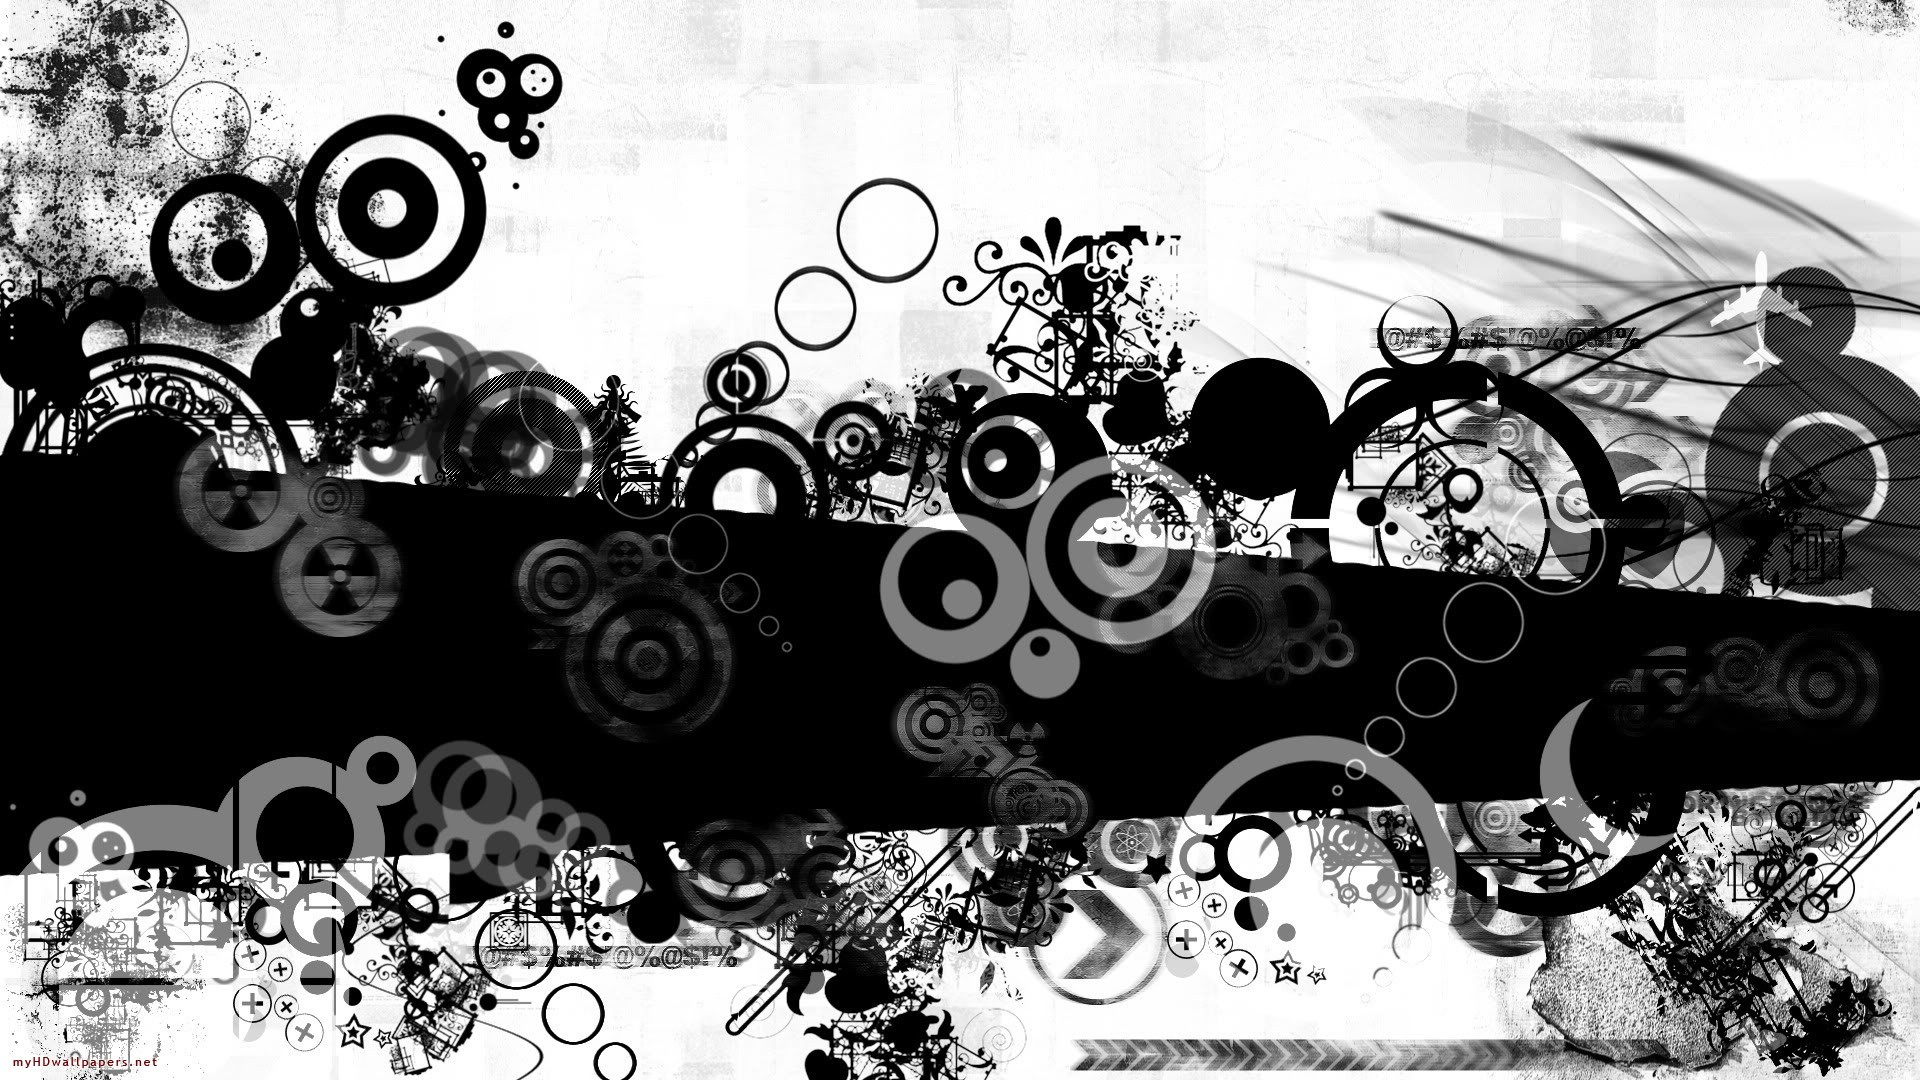 1920x1080 Cool Black And White Wallpapers Resolution -Desktop Backgrounds-